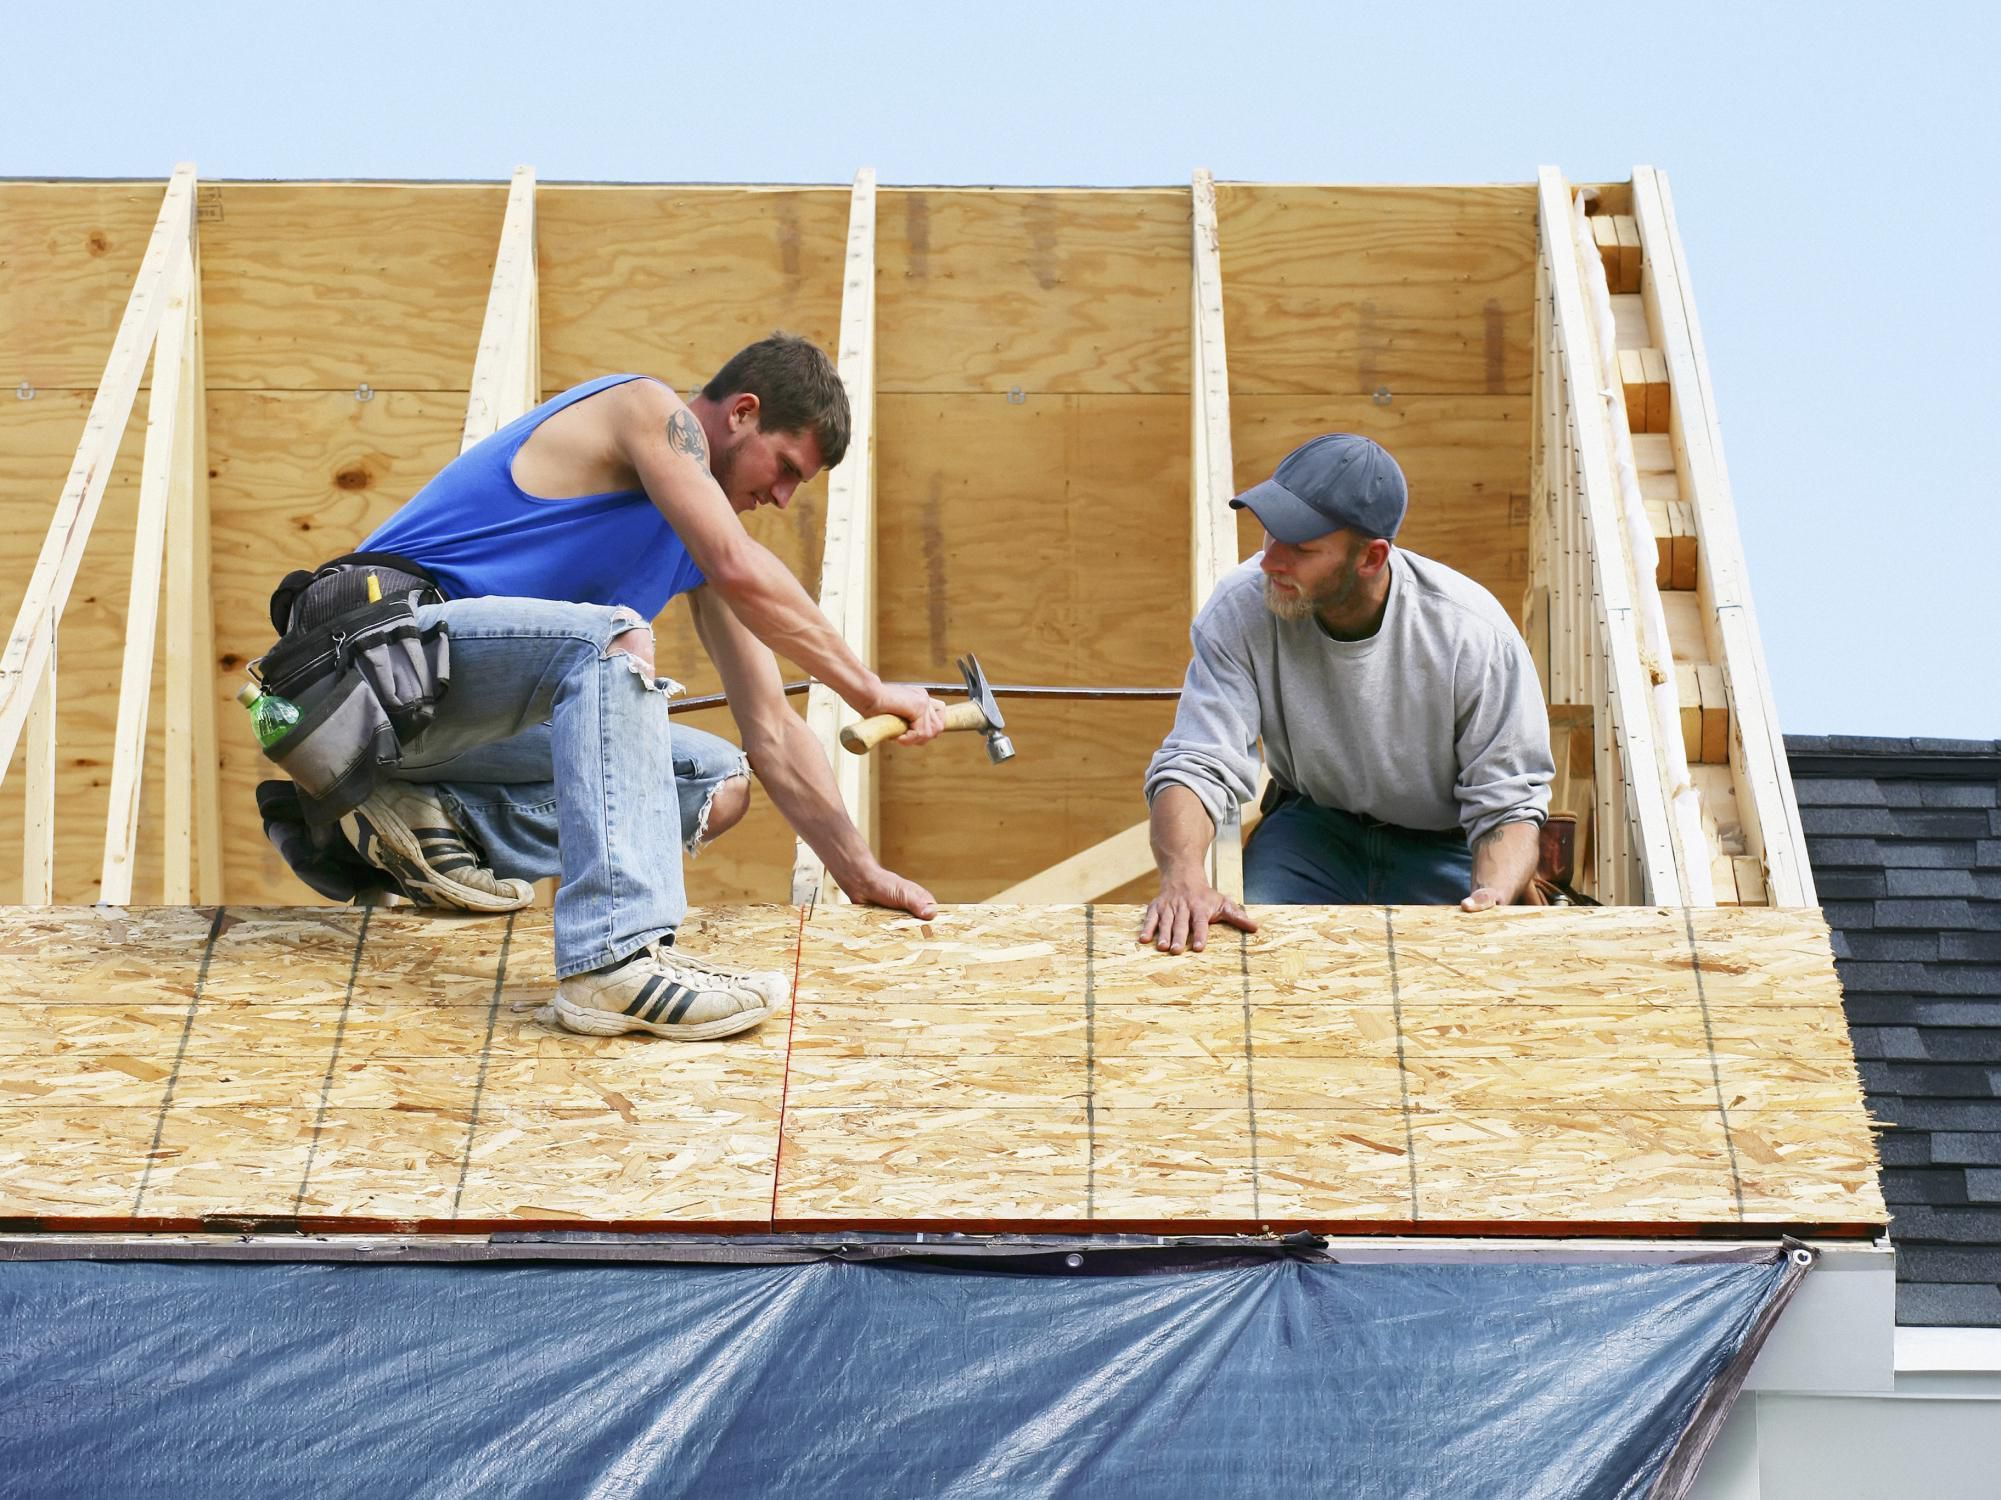 What You Should Know About Roofing Replacement Roof Repair Roofing Roof Problems